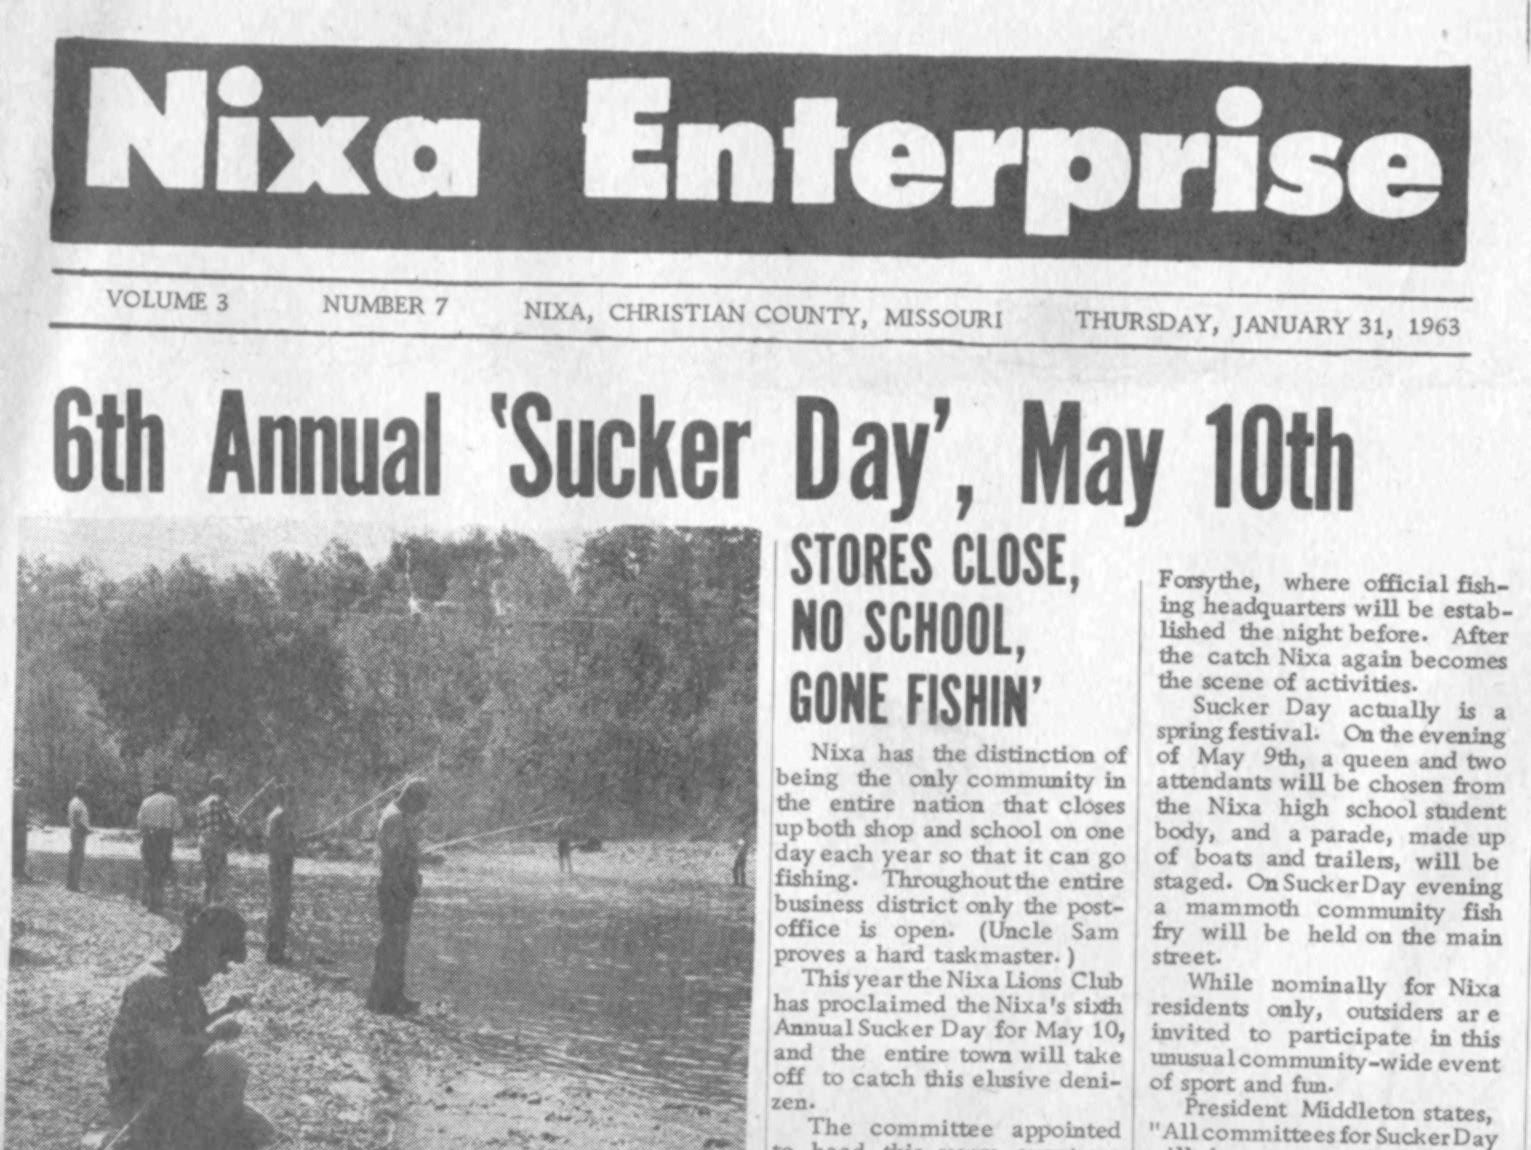 Sucker Day was featured on the front page of the Nixa Enterprise in 1963.